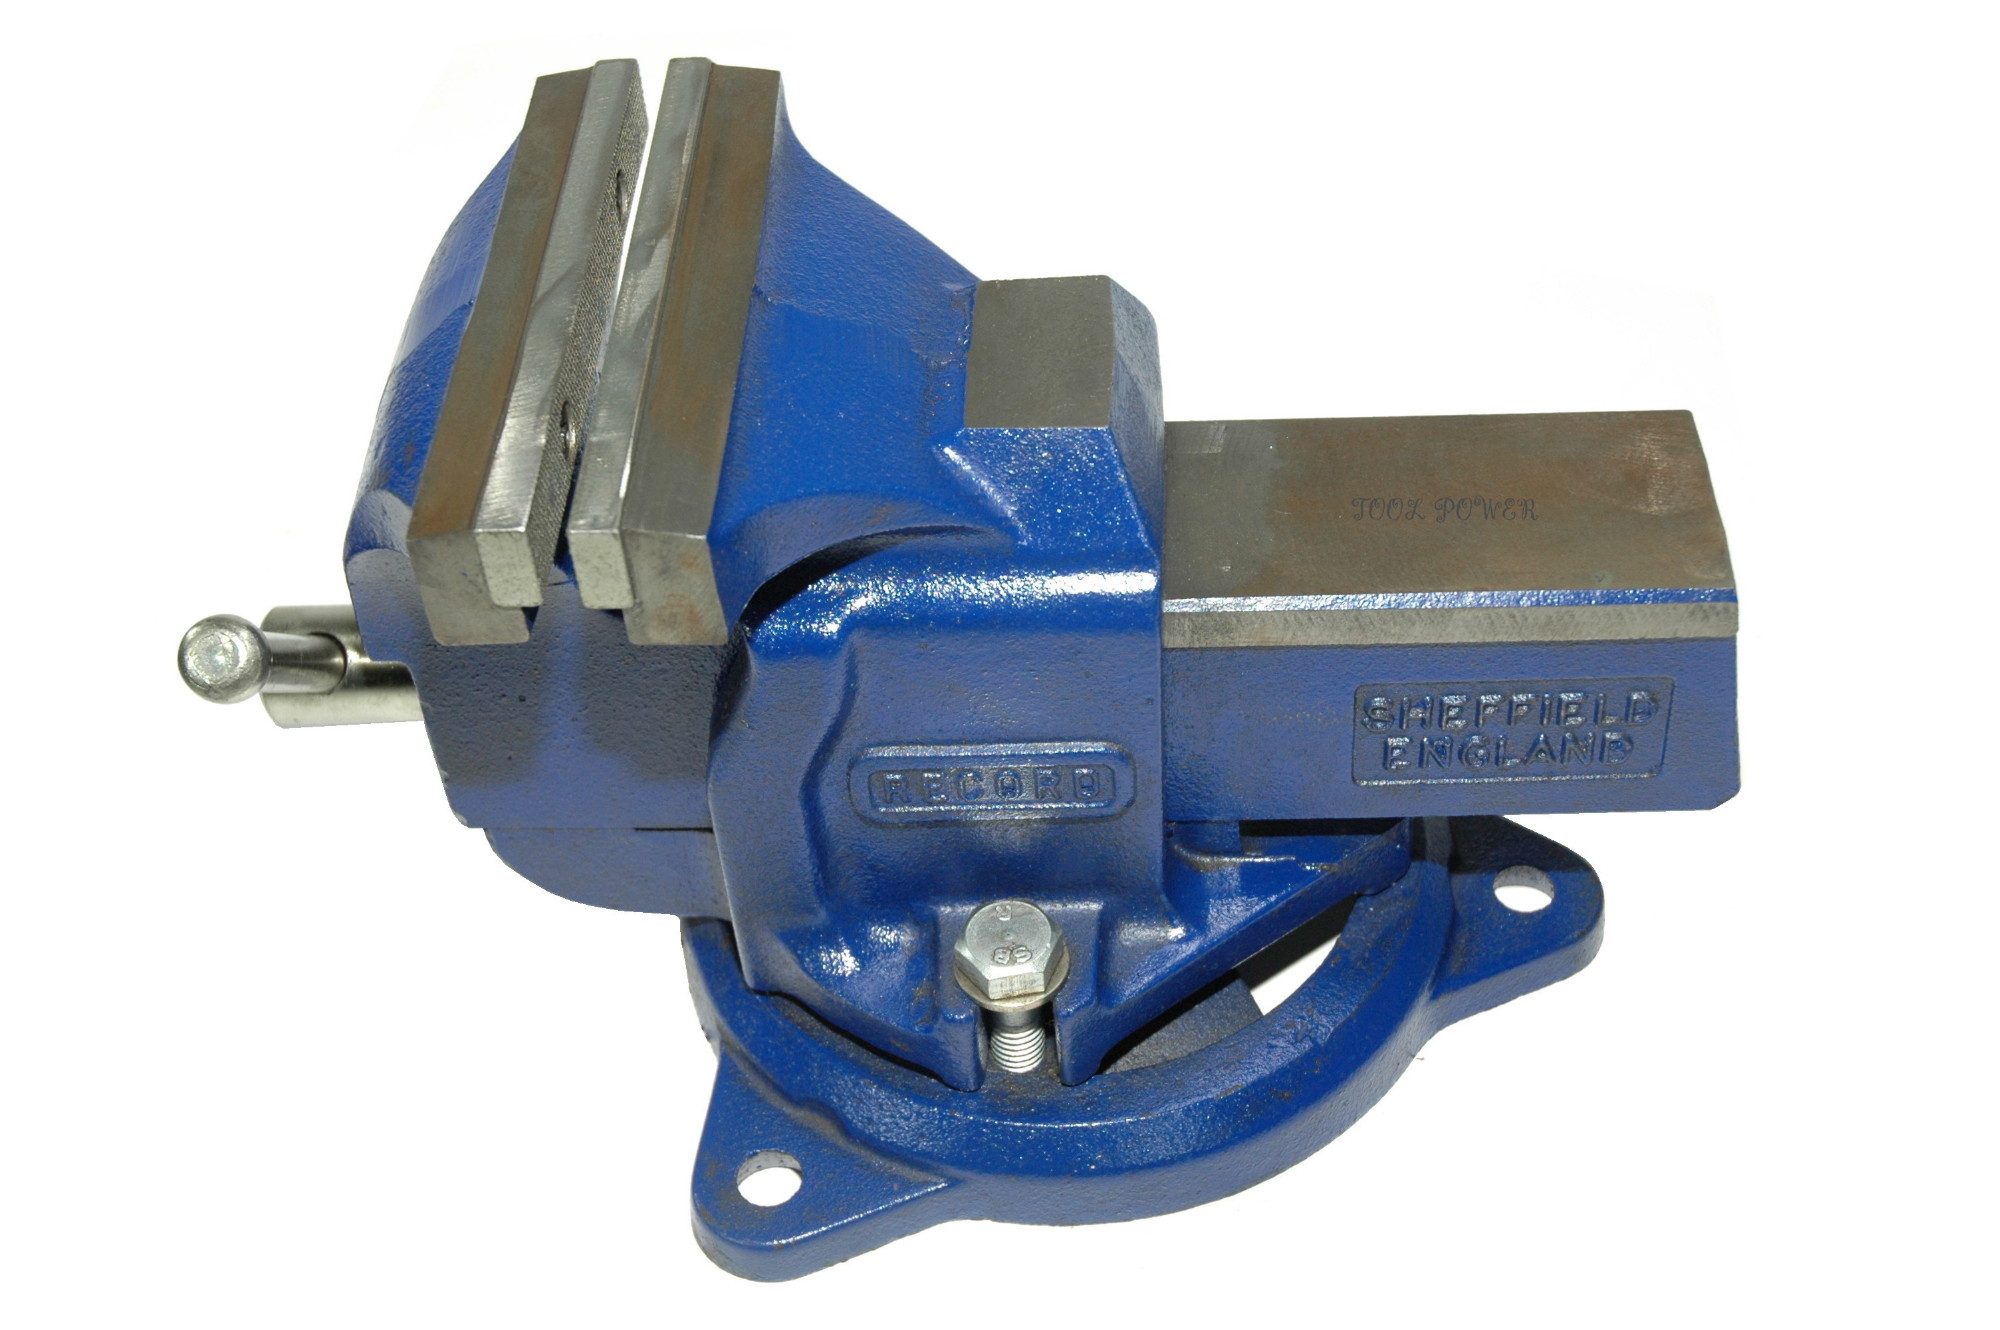 Bench Vice RECORD 150mm Swivel base -936